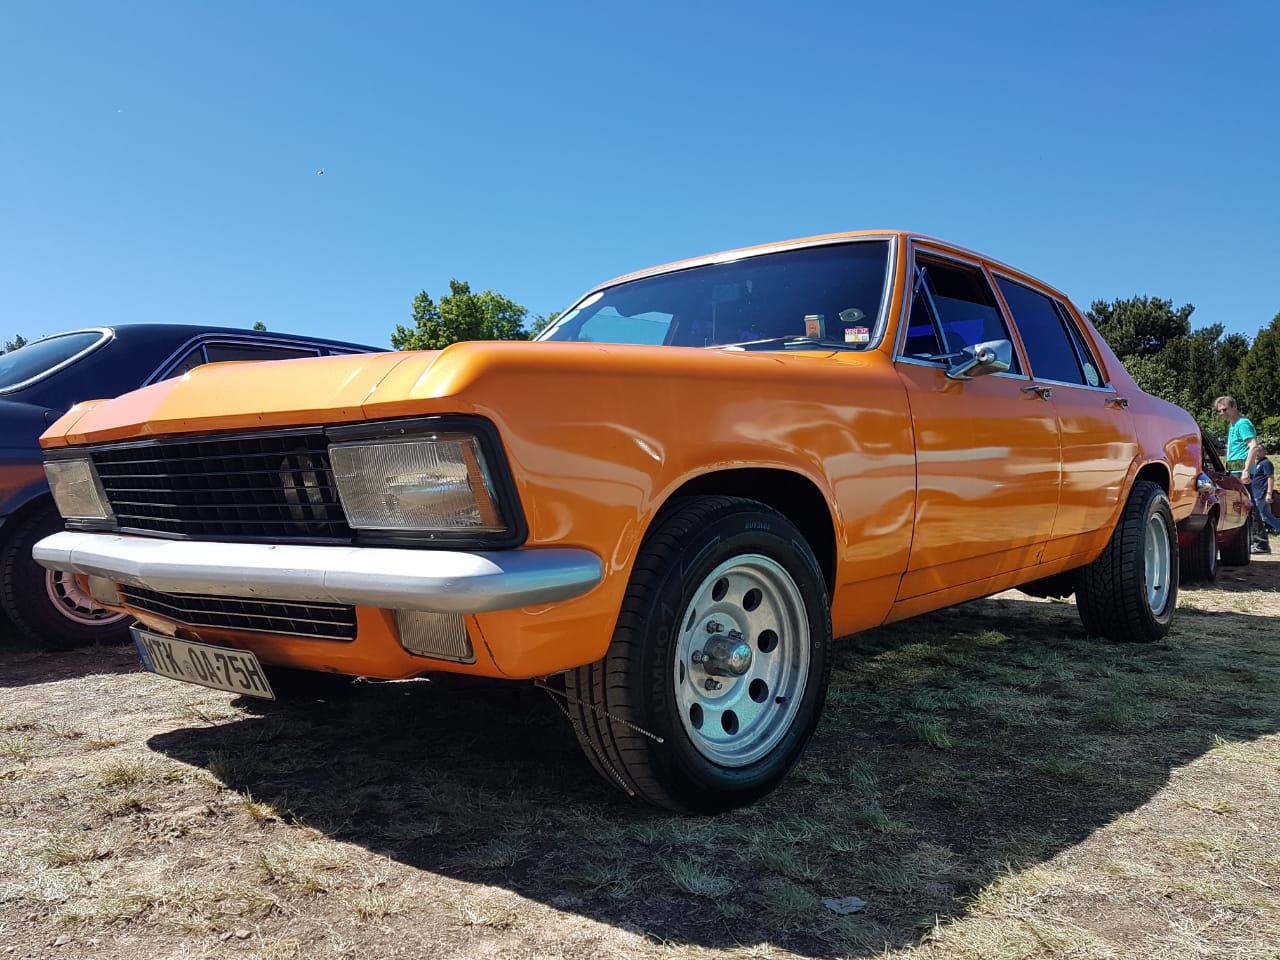 Opel Diplomat V8 in orange von Christian